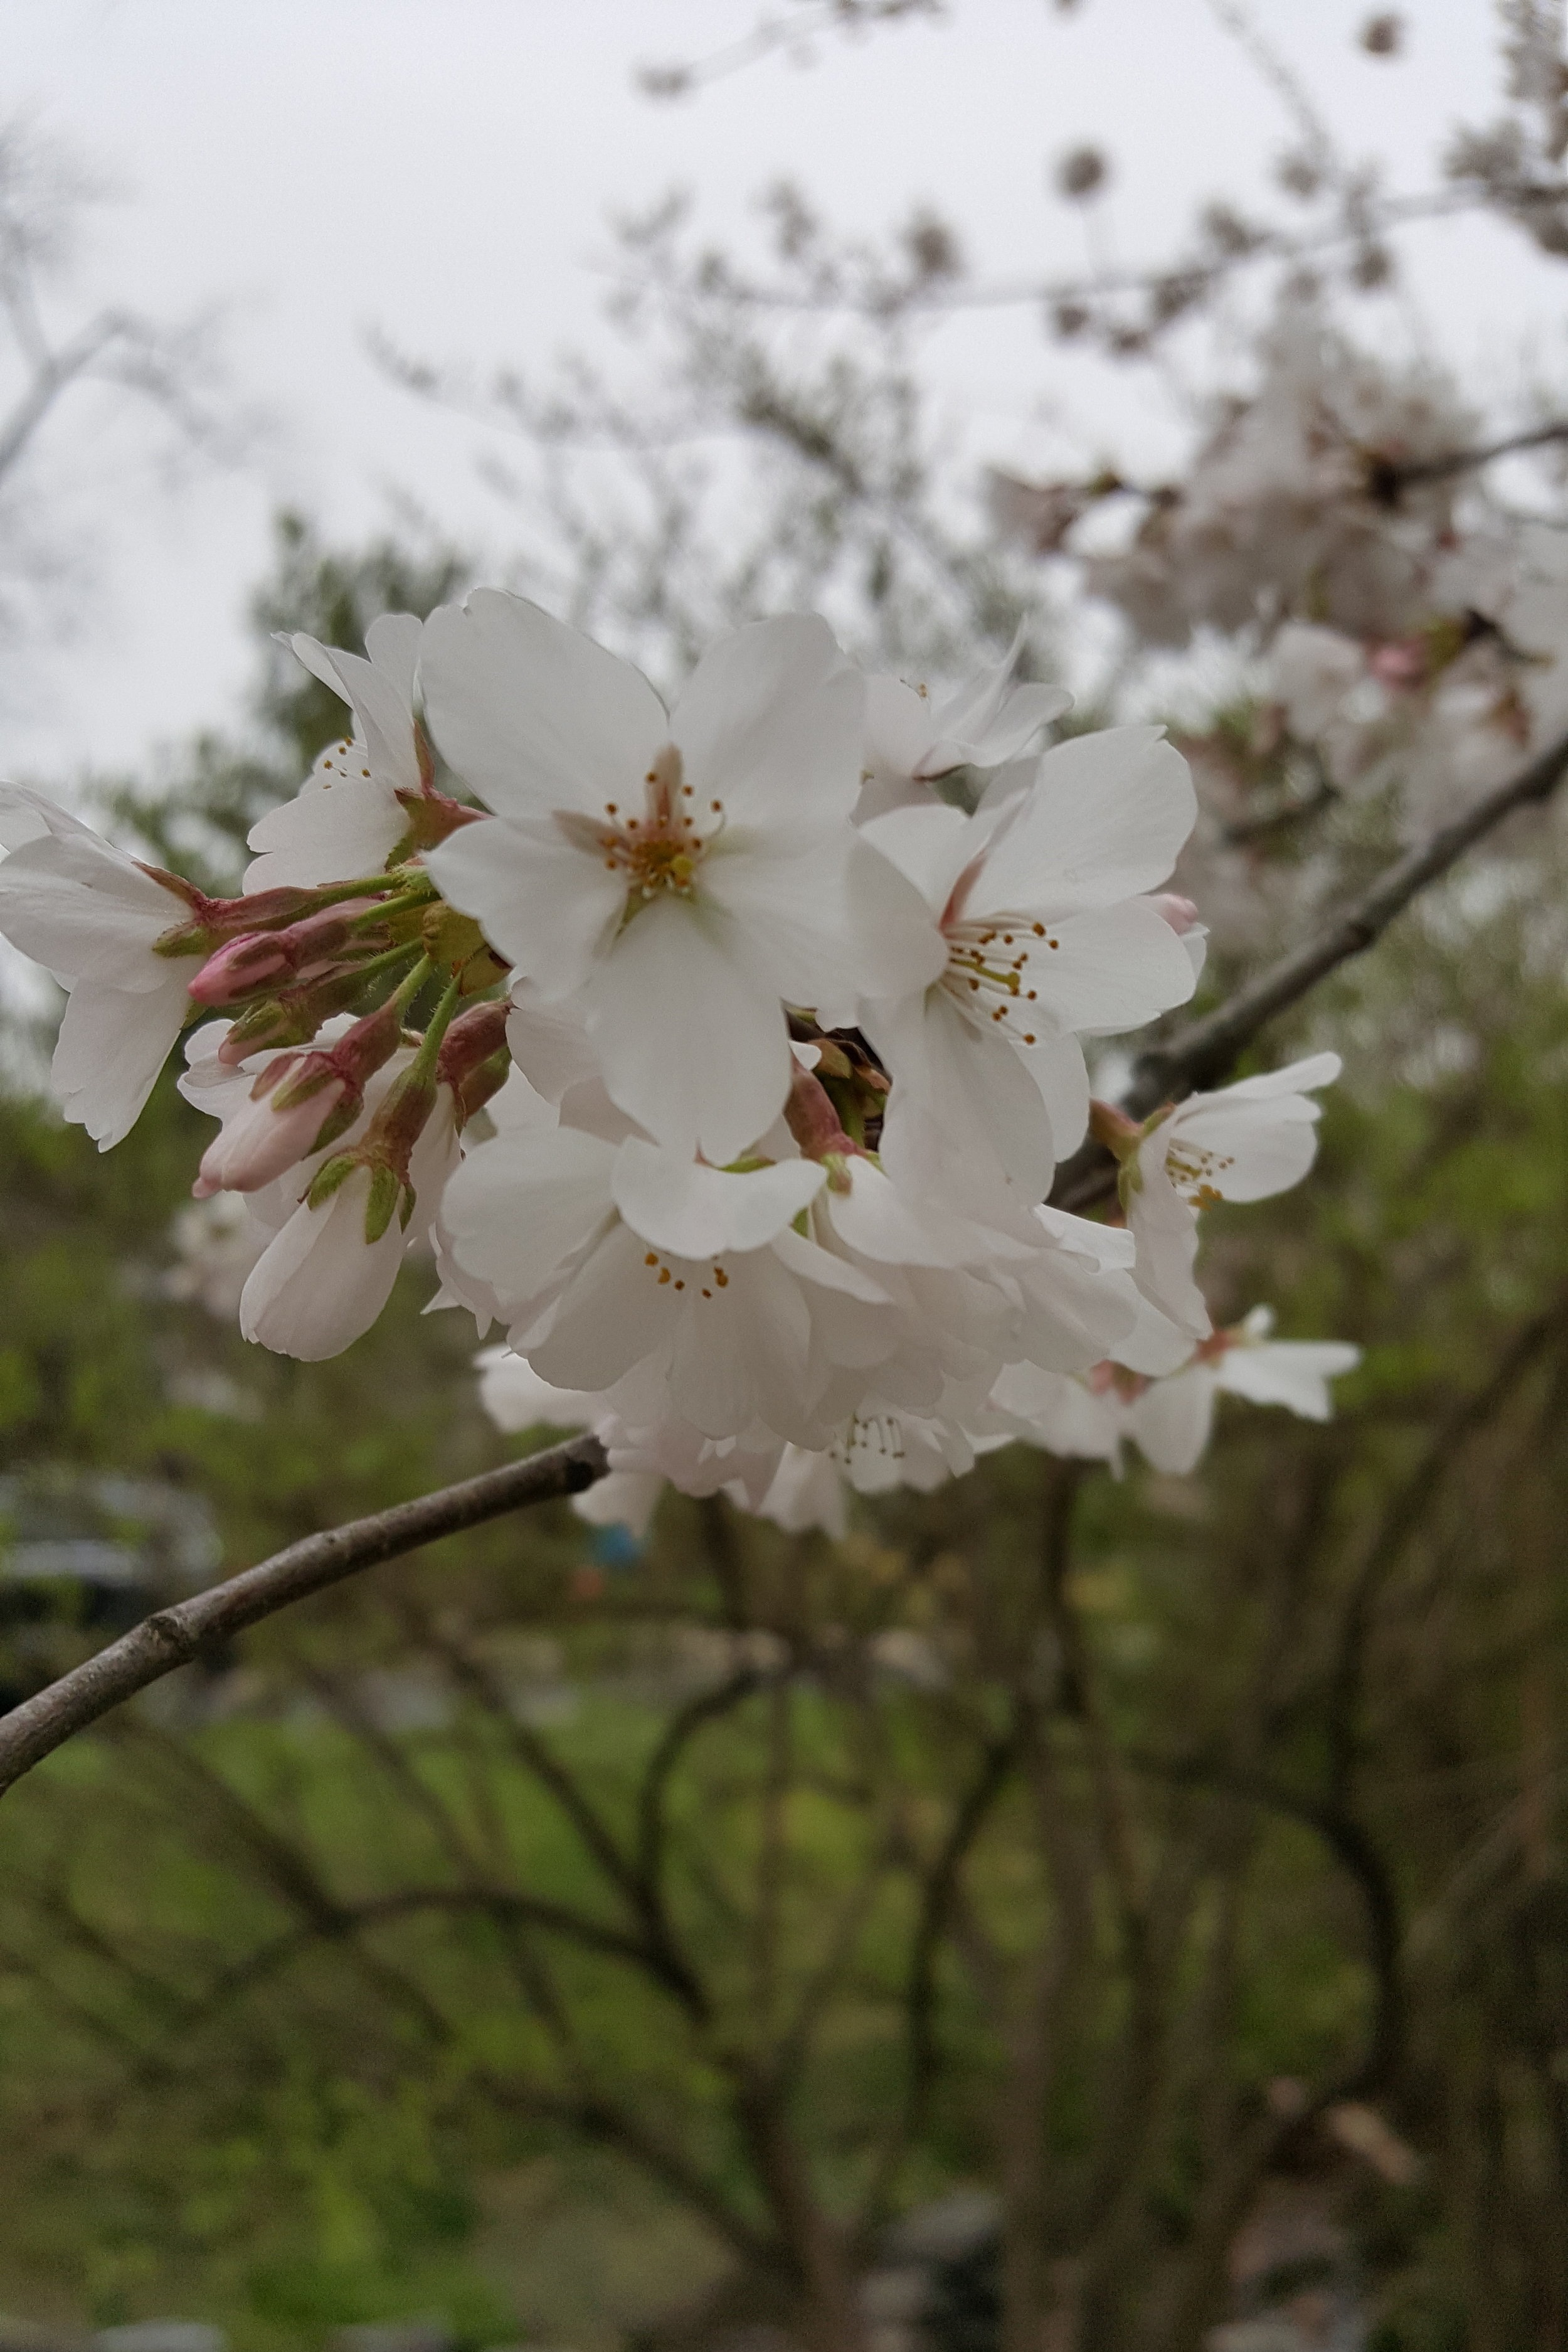 Cherry Blossom Season is Here! -